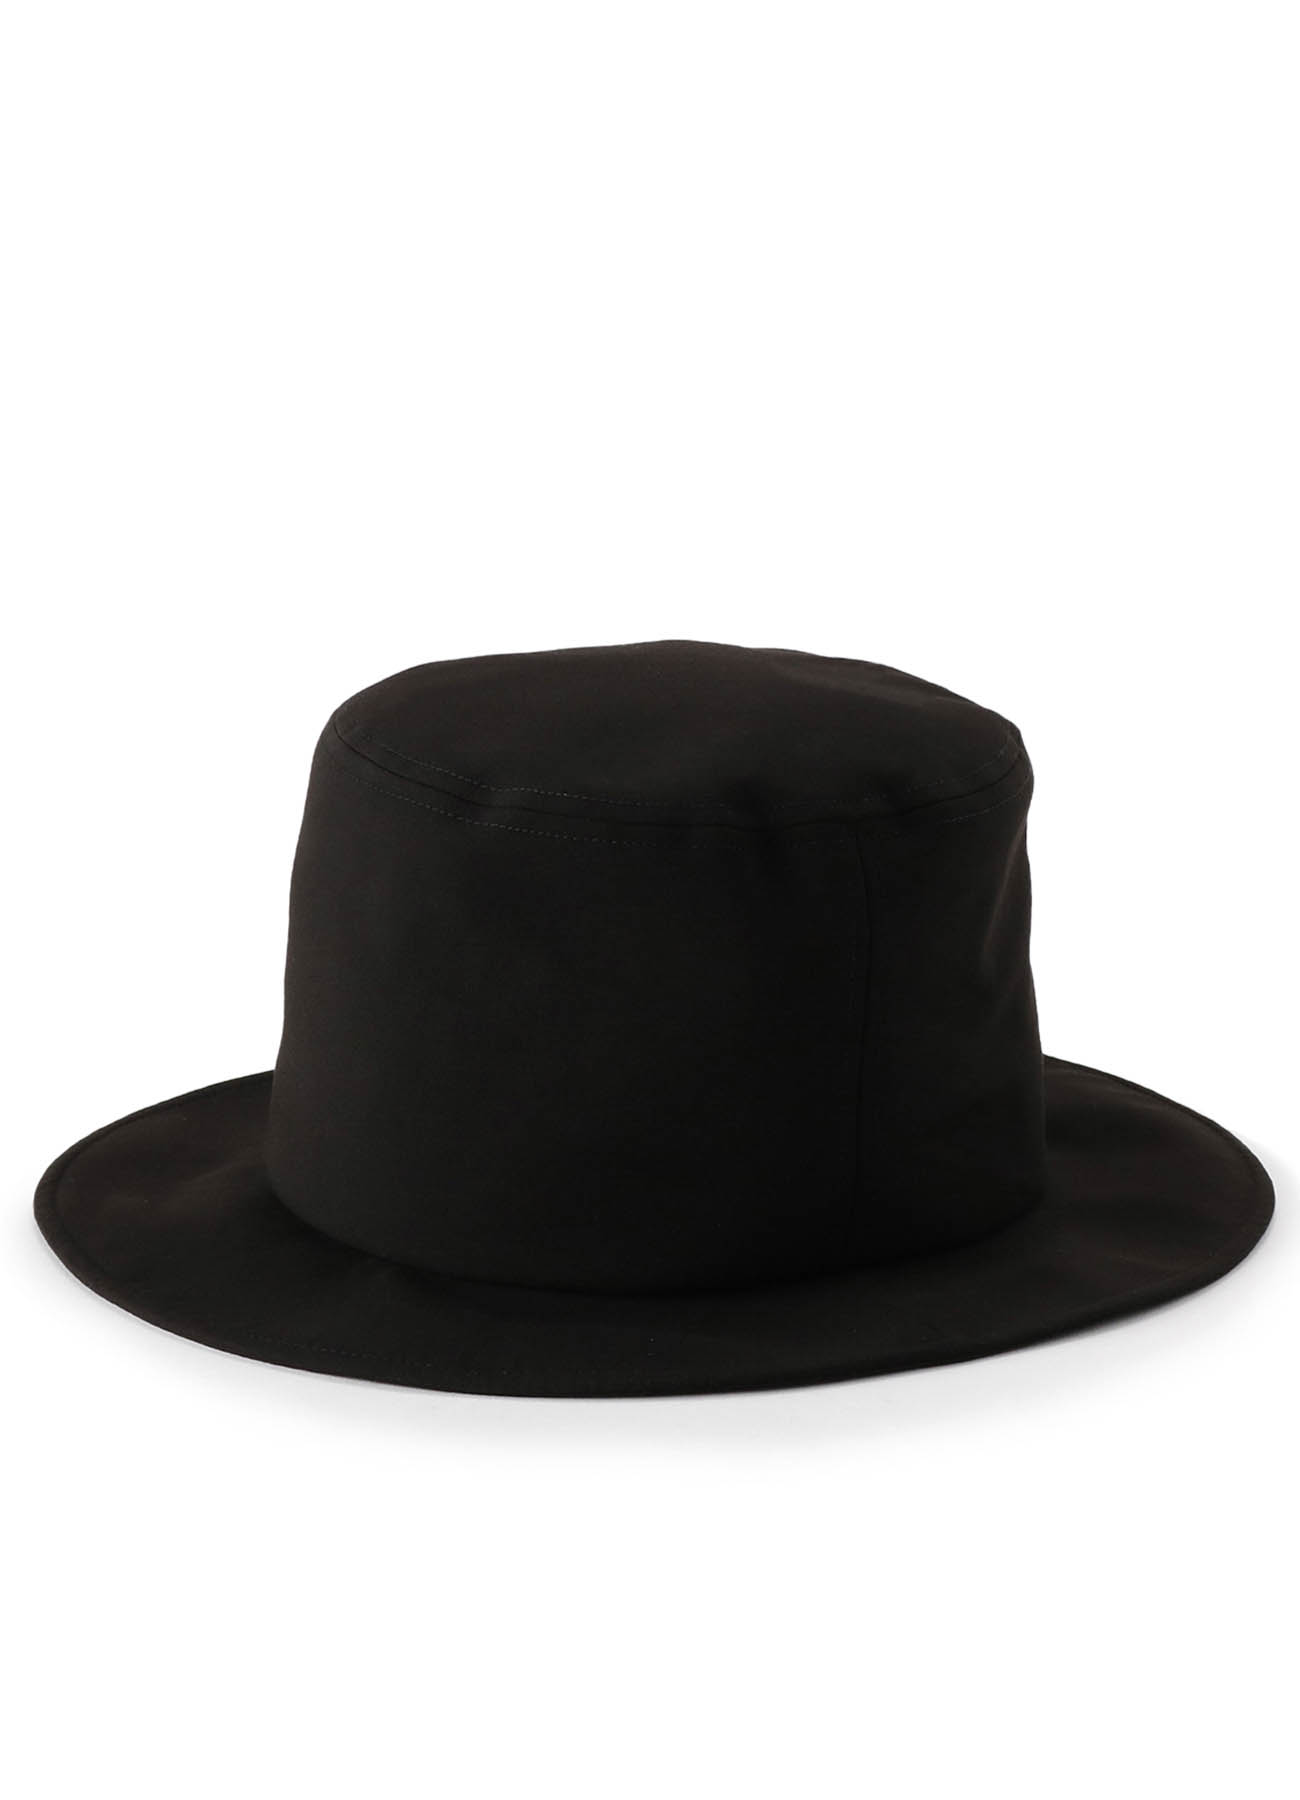 Pe/Rayon Gabardine Stretch Flat Top Circular Hat